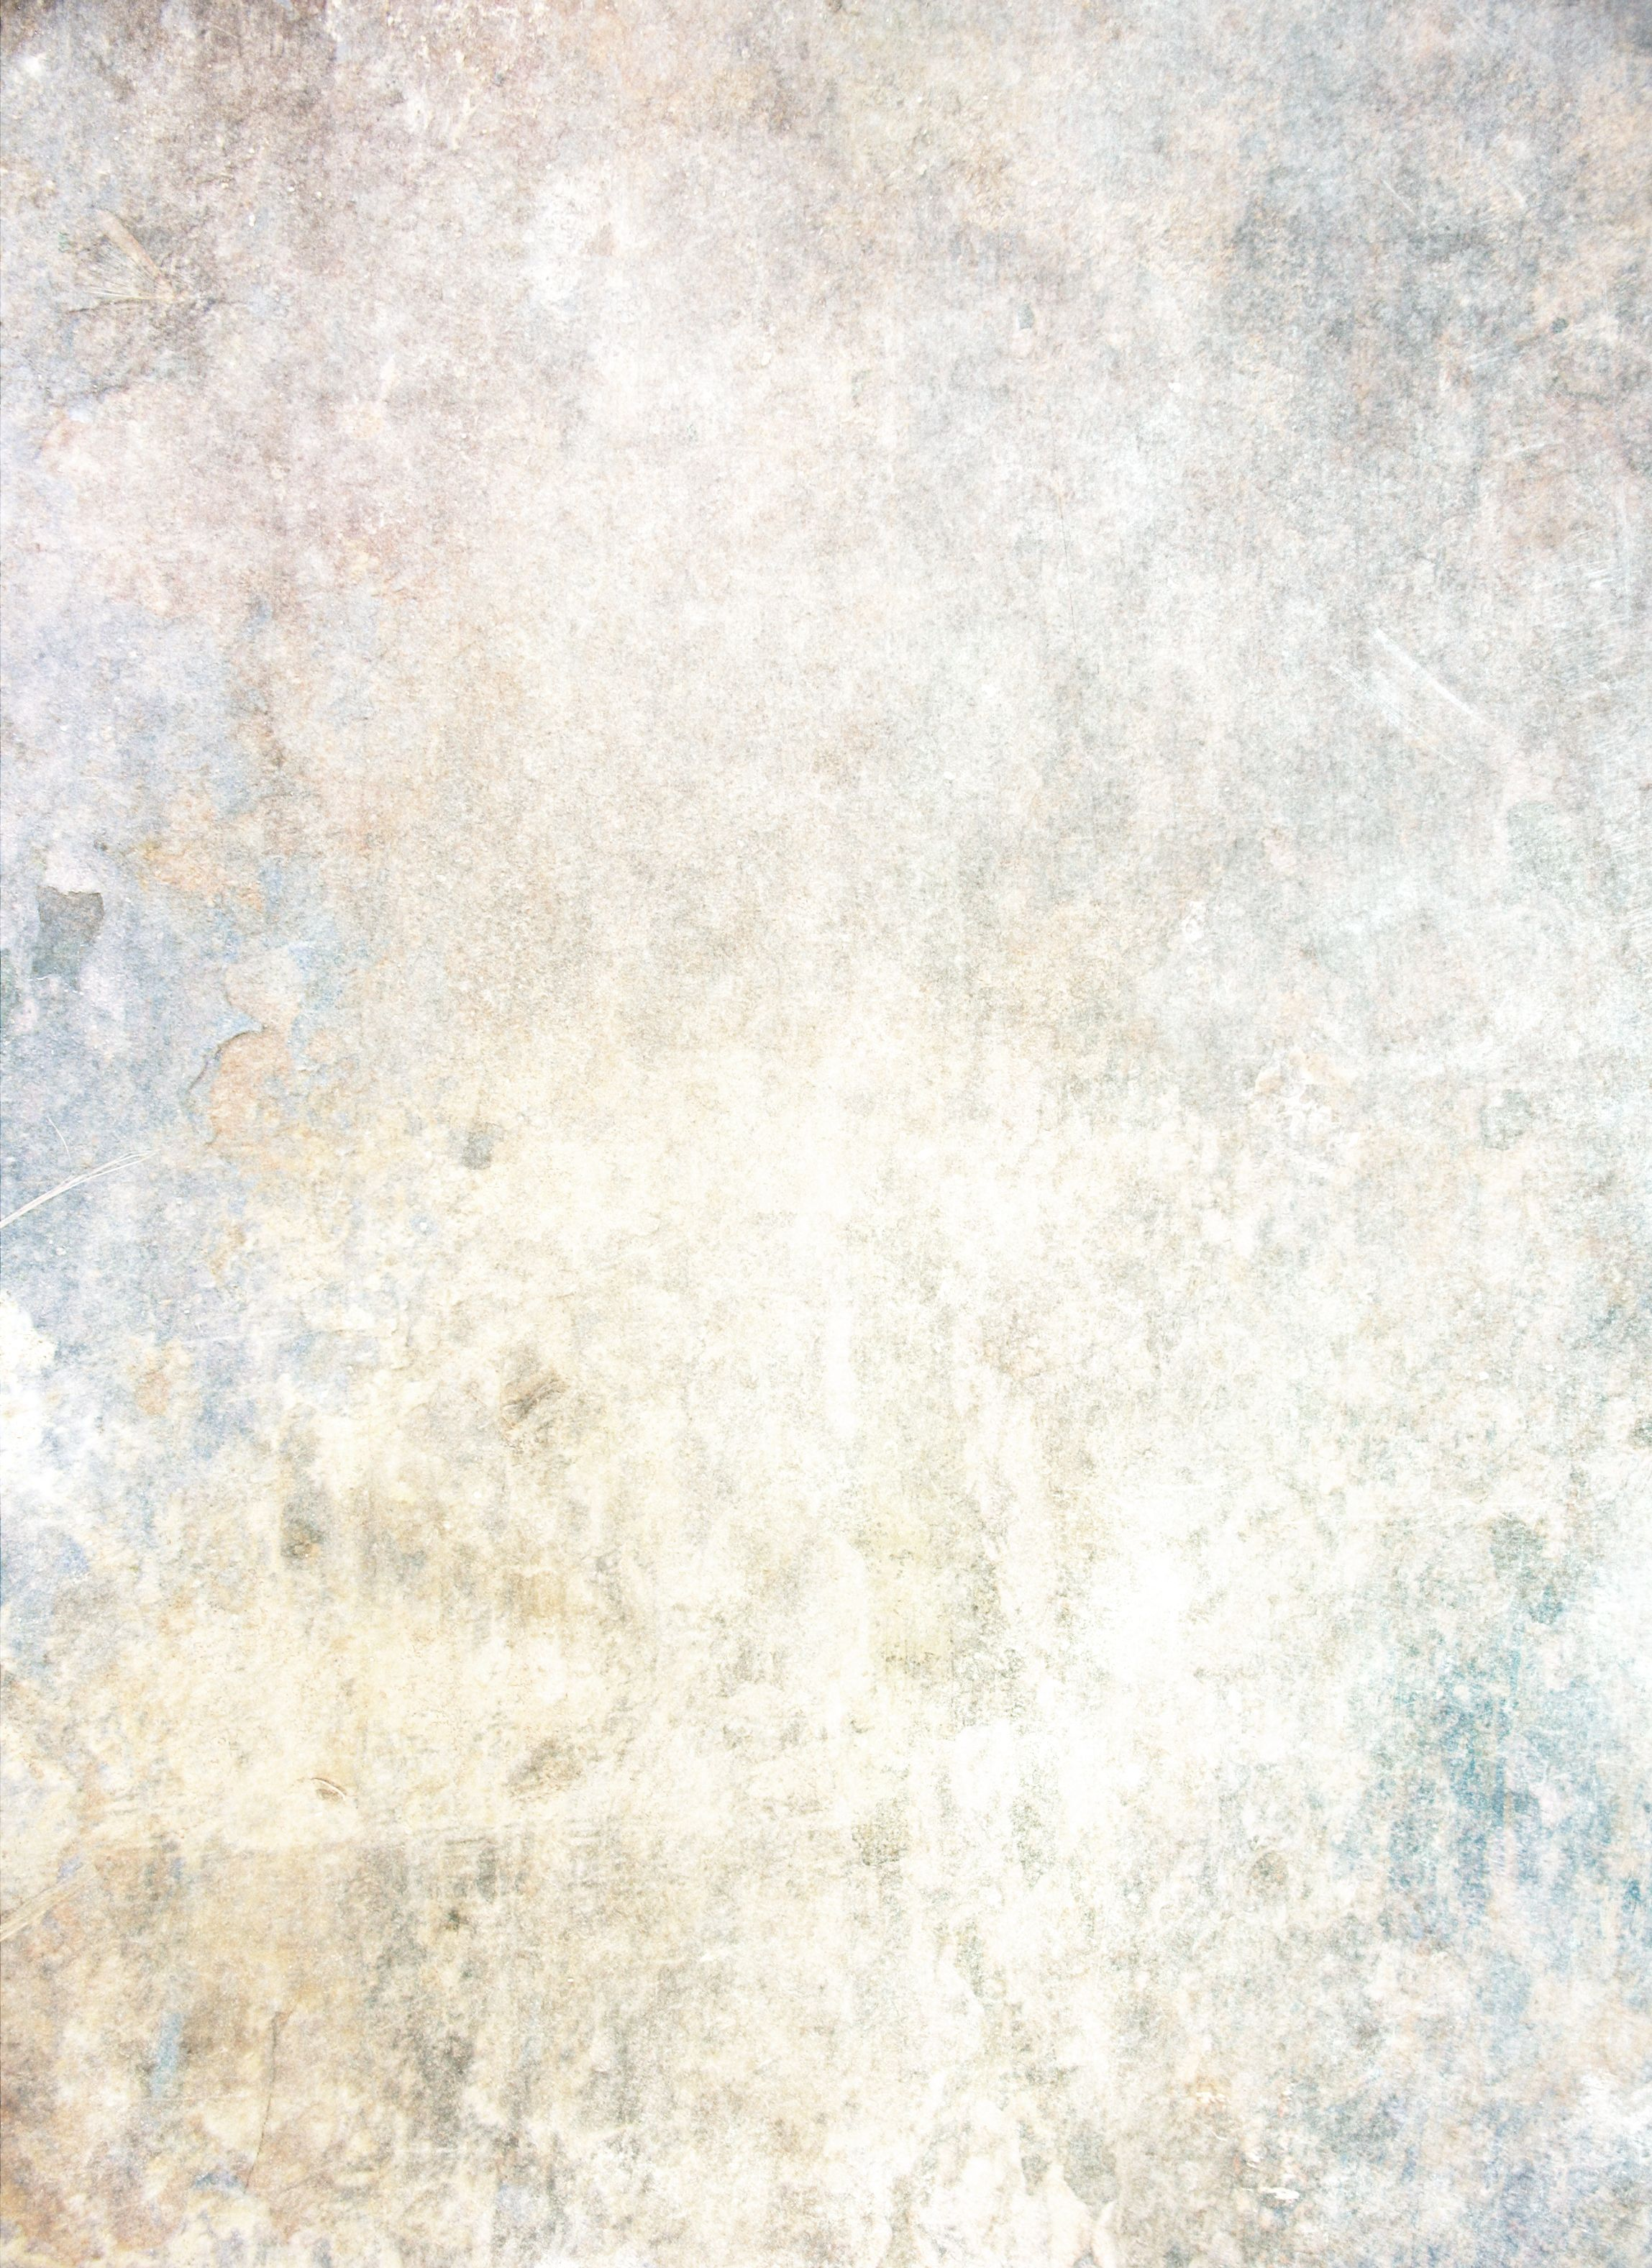 25 Subtle and Light Grunge Textures | Texture | Pinterest ...